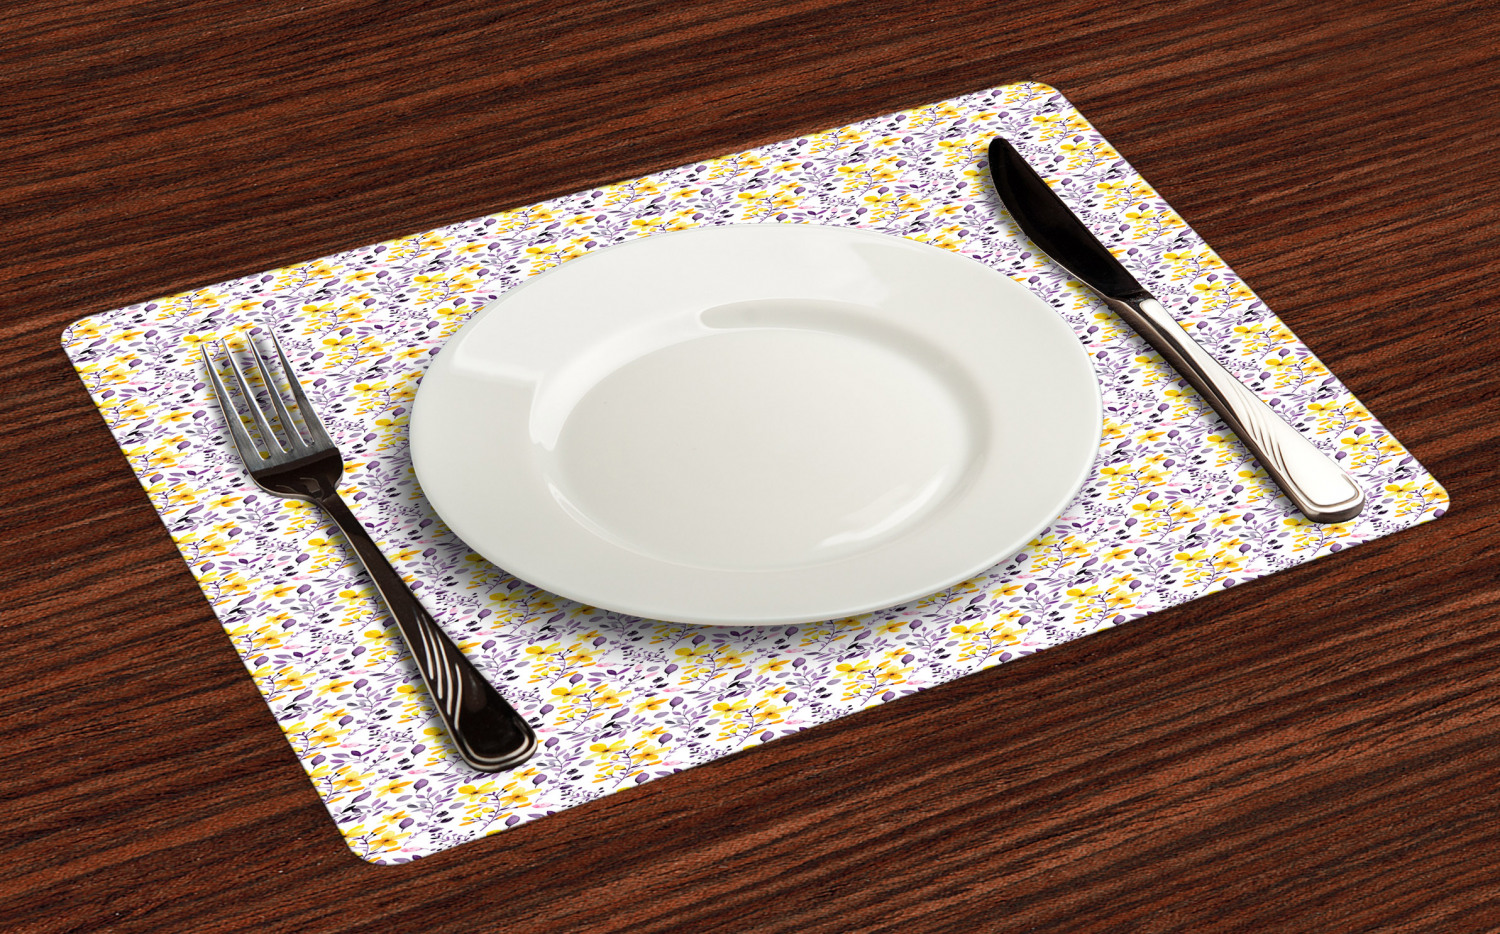 Ambesonne-Flower-Pattern-Placemat-Set-of-4-Fabric-Place-Mats-for-Table-Decor thumbnail 117